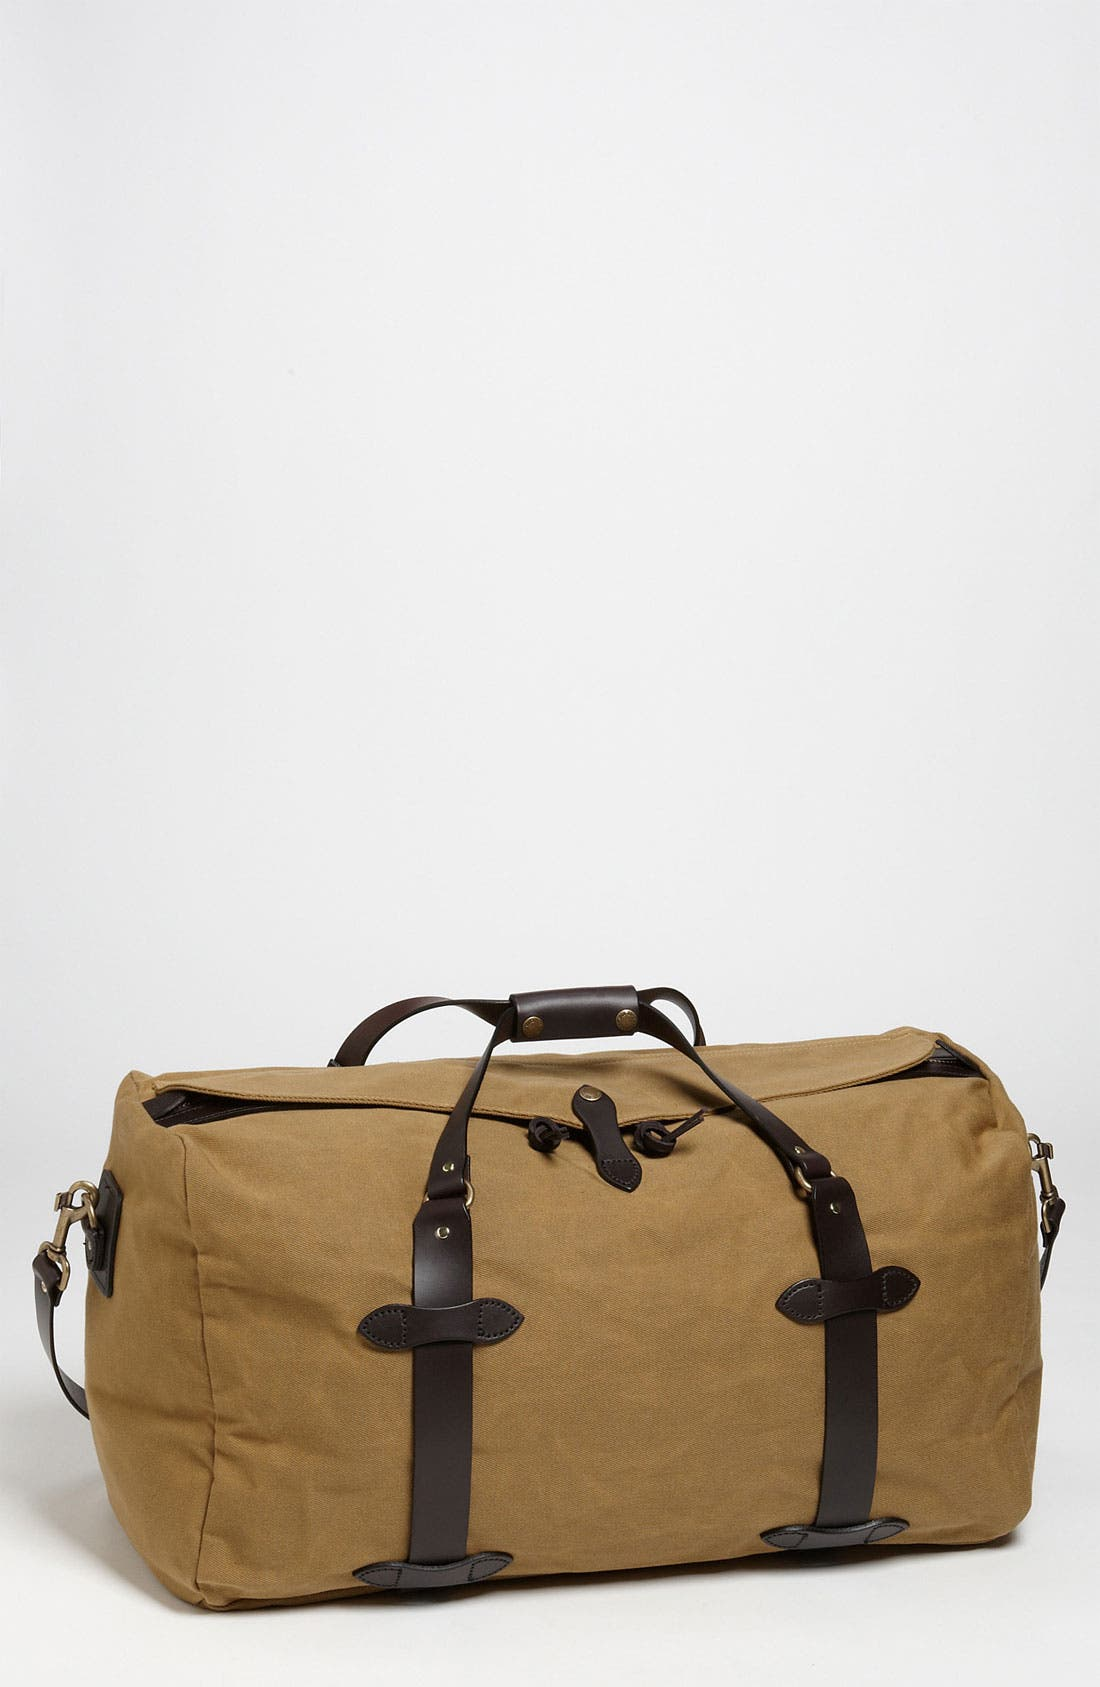 Alternate Image 1 Selected - Filson Medium Duffel Bag